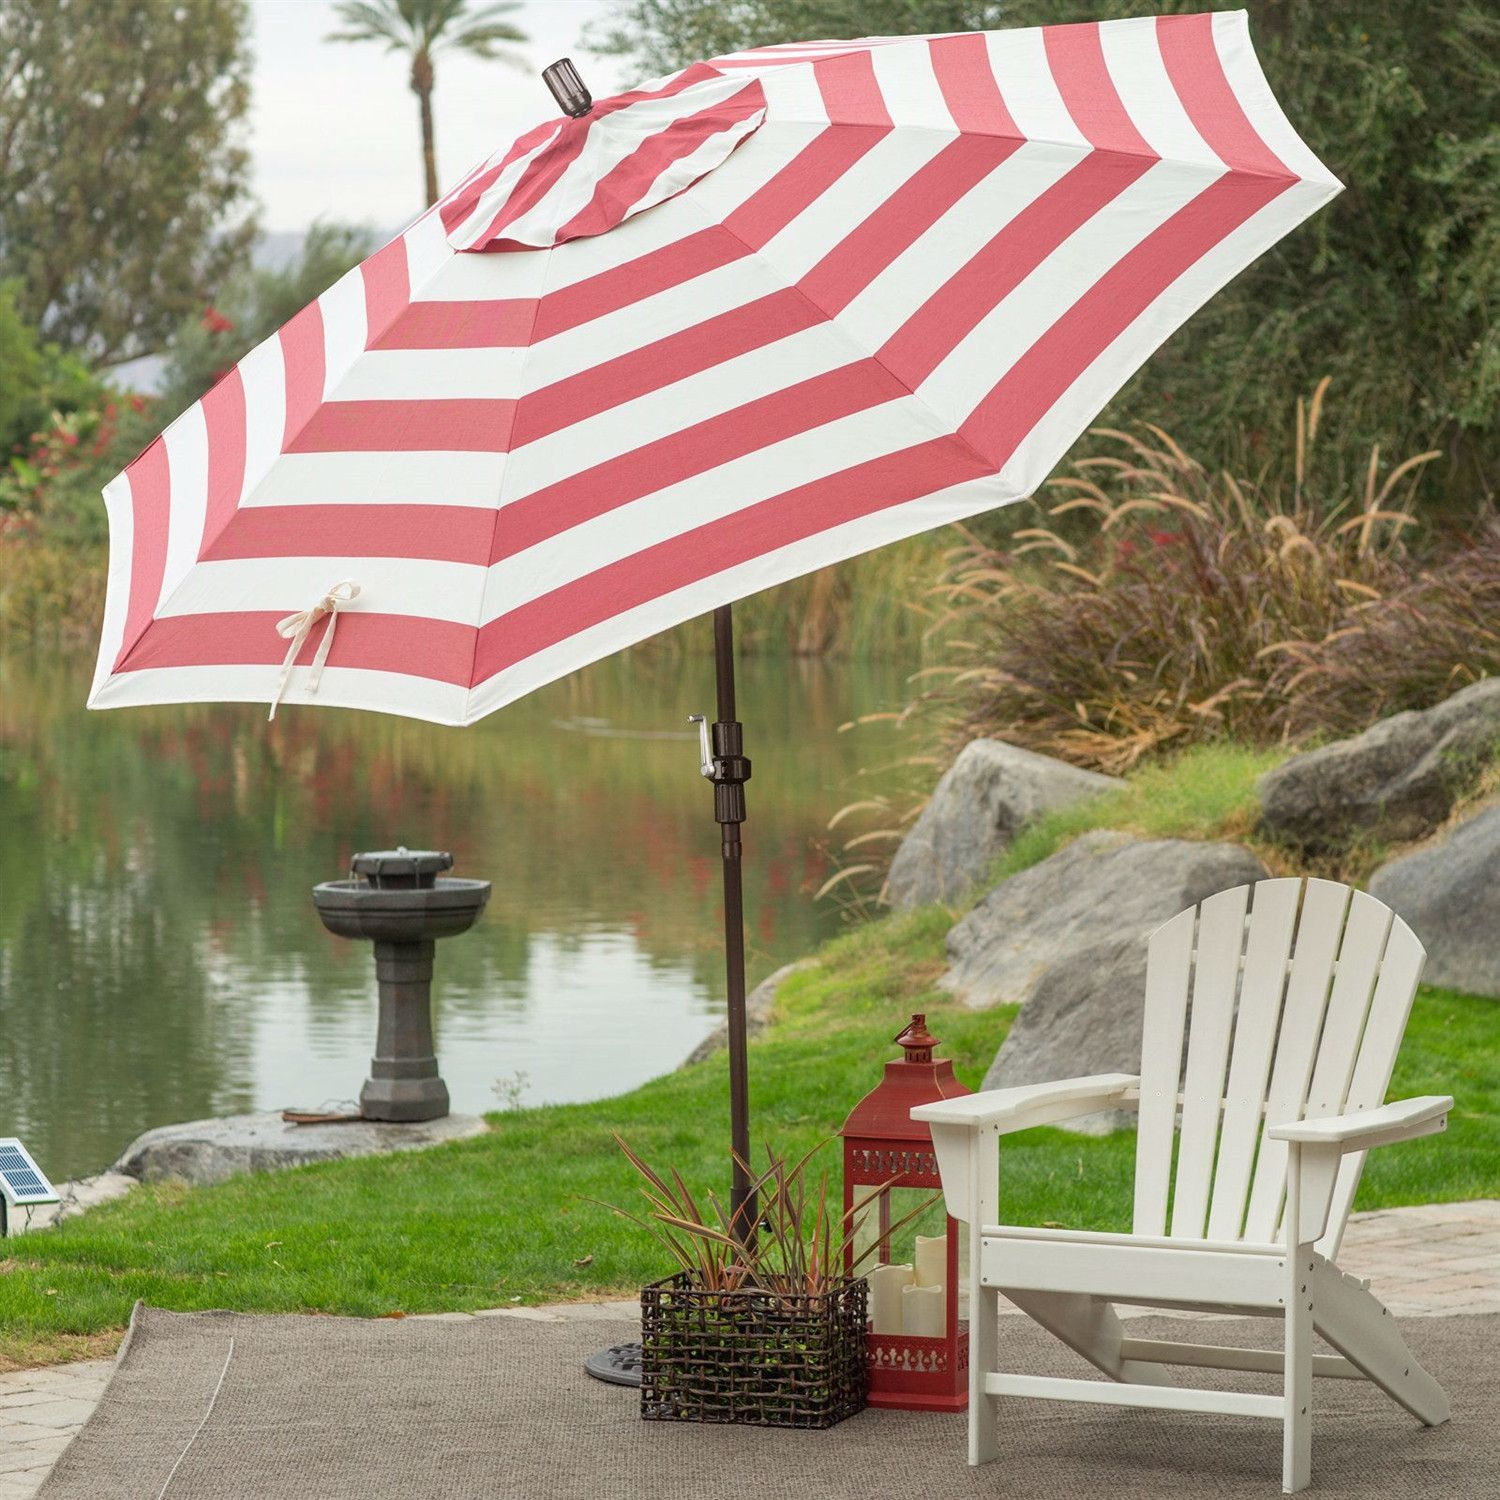 7.5 Ft Patio Umbrella In Red And White Stripe Outdoor Fabric And Metal Pole